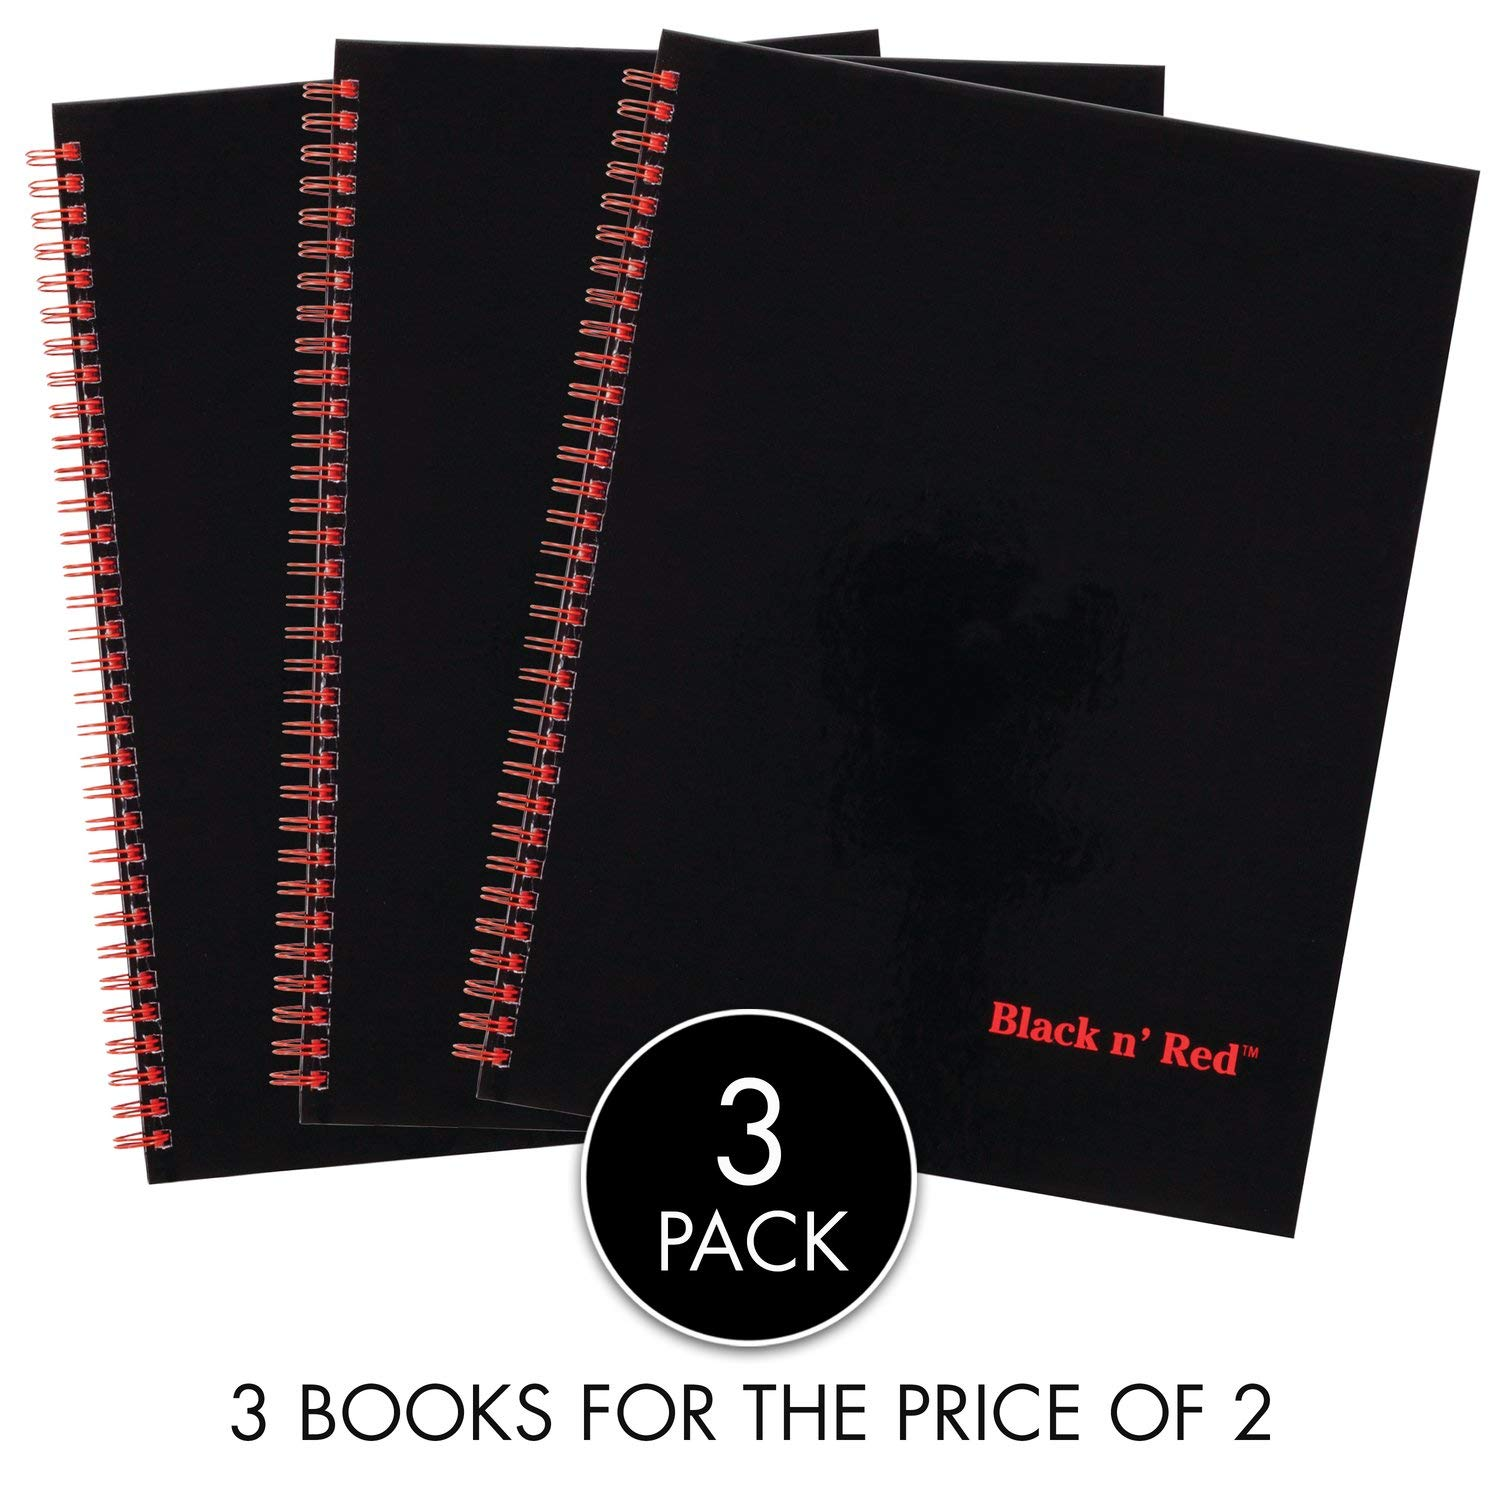 Black n' Red Twin Spiral Hardcover Notebook Value Pack, 3 for Price of 2, Large, Black/Red, 70 Ruled Sheets, 3 Pack (400123488) by Black n' Red